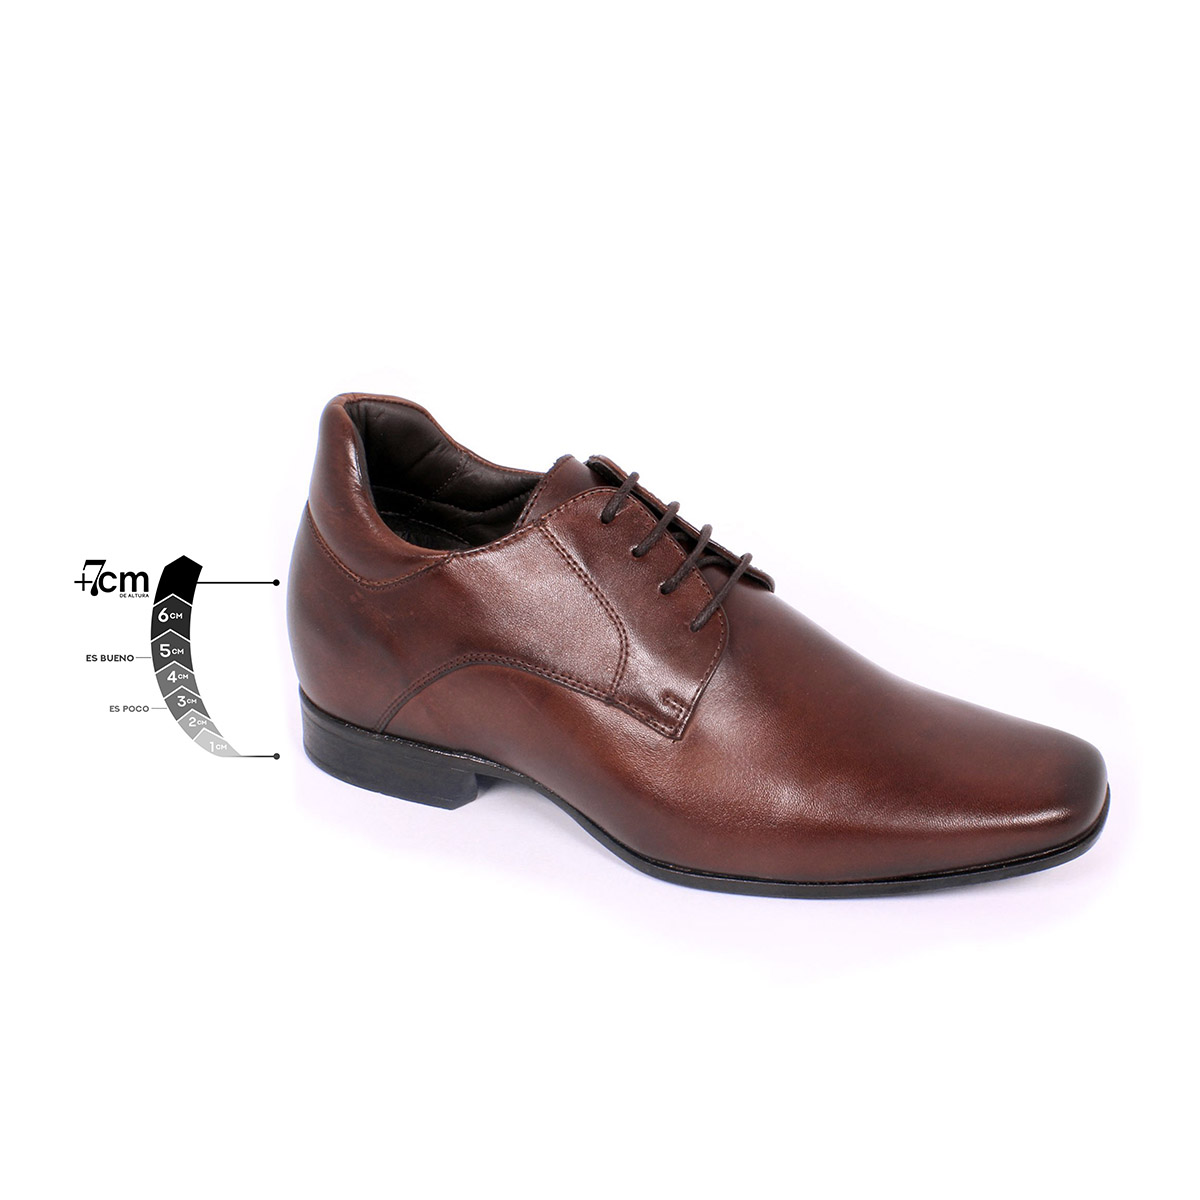 Zapato Formal Fashion Café Max Denegri +7cms de Altura_75312